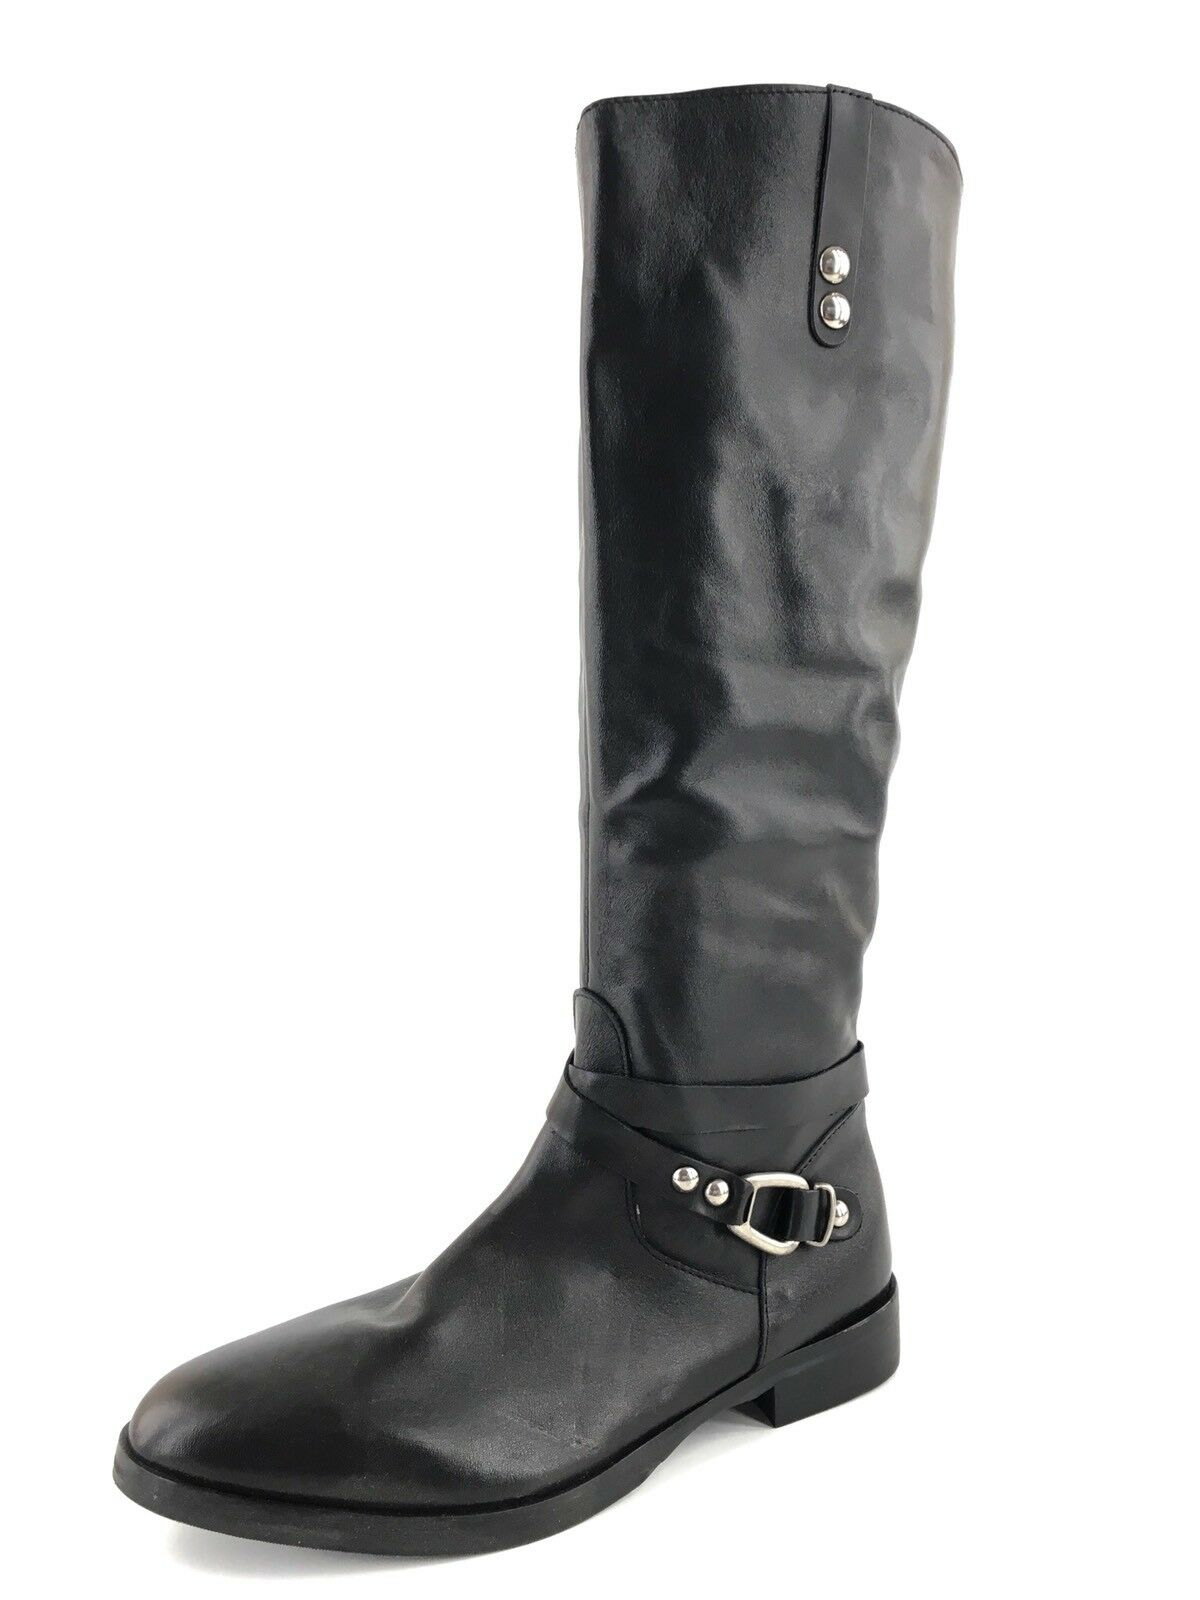 Charles David Rene Black Leather Knee High Womens Boots Size 7.5 M  495